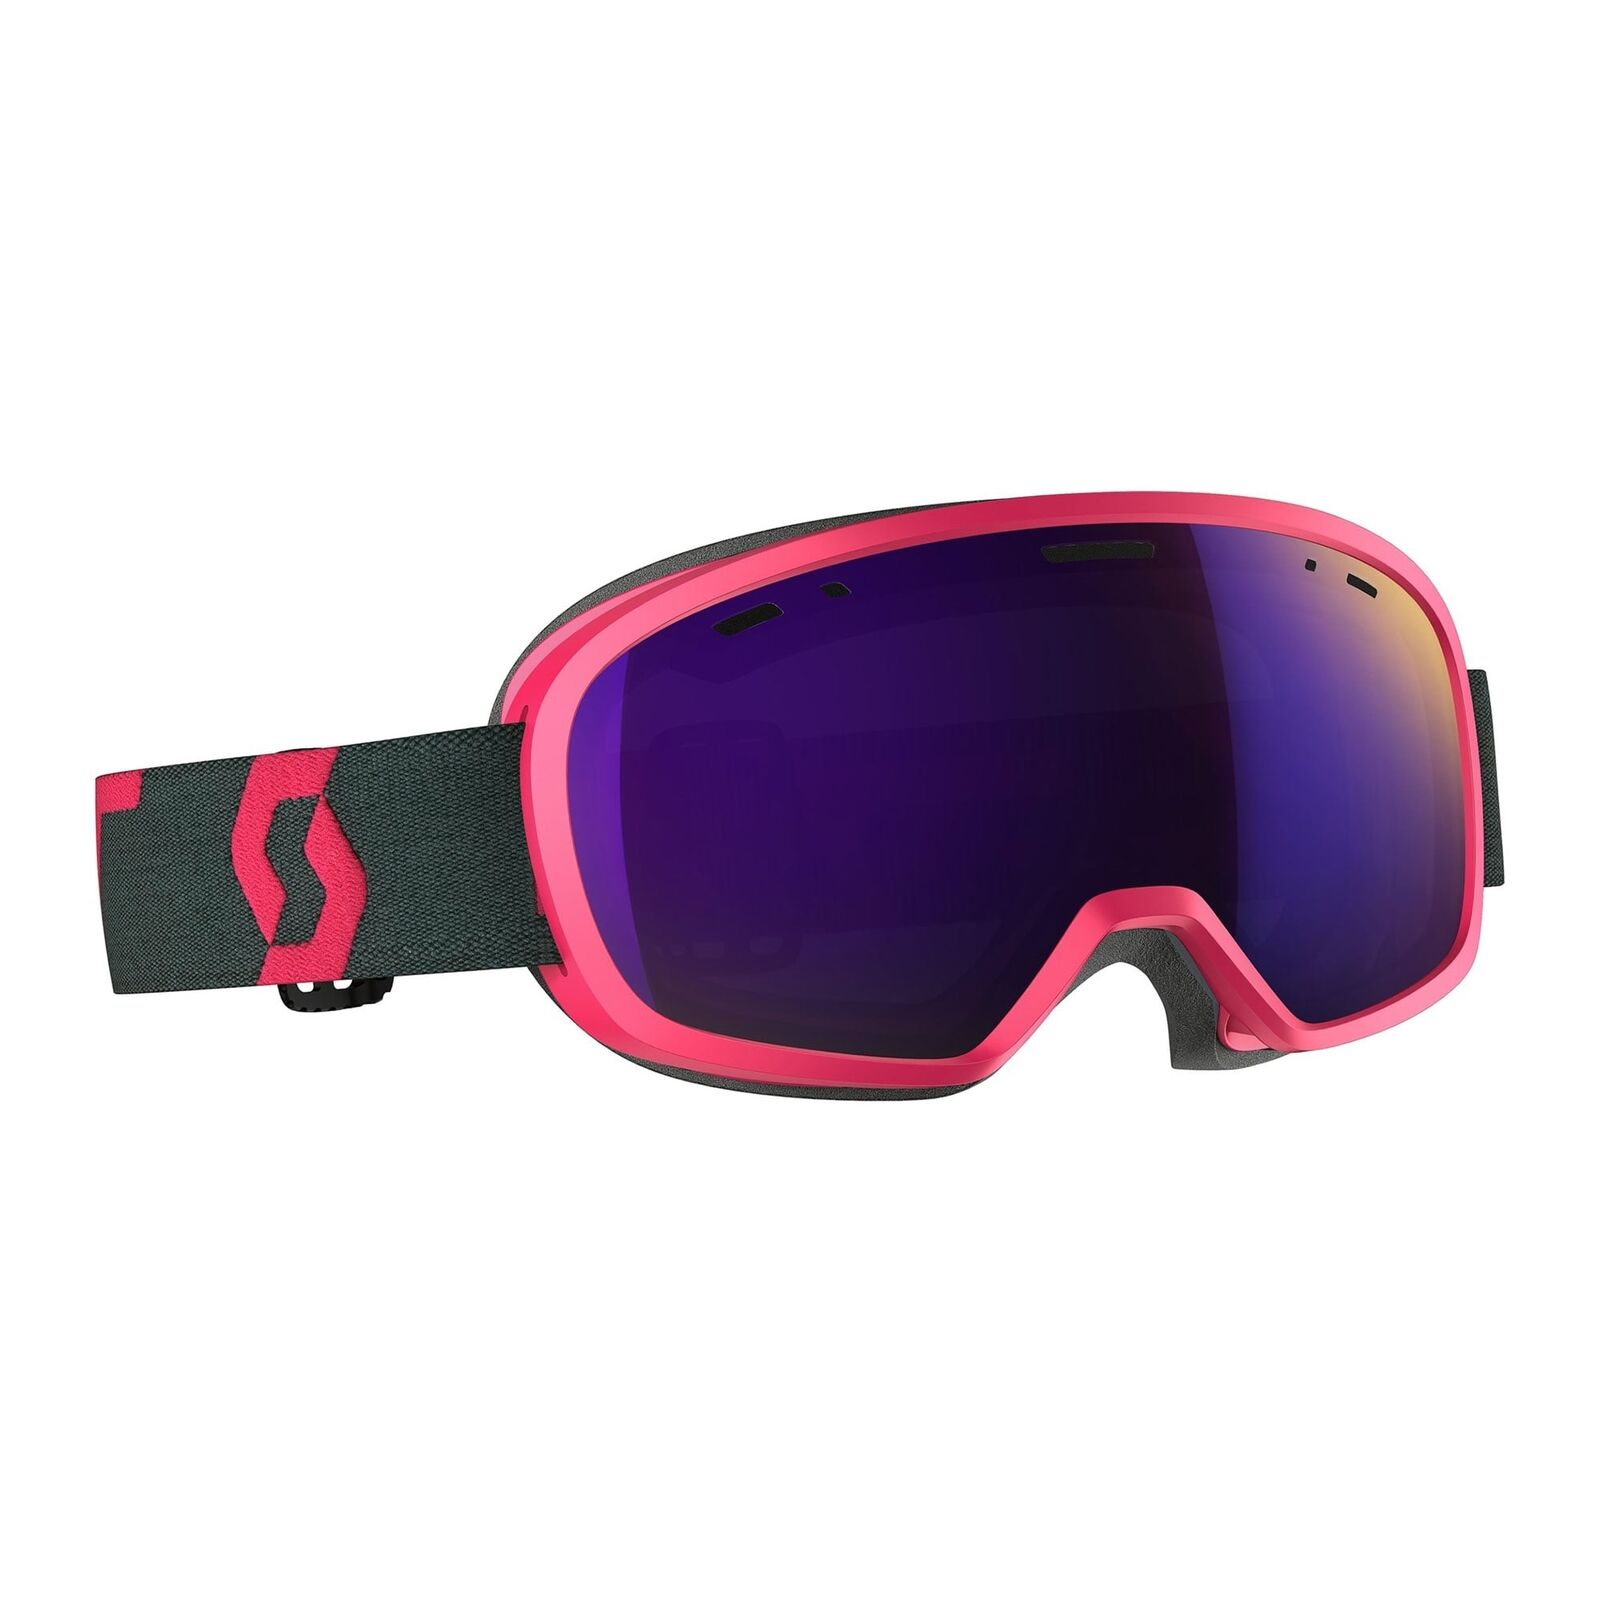 Scott Unisex Scot.260572 Scott Buzz Pro Goggle - Amplifier Purple Chrome (2018)